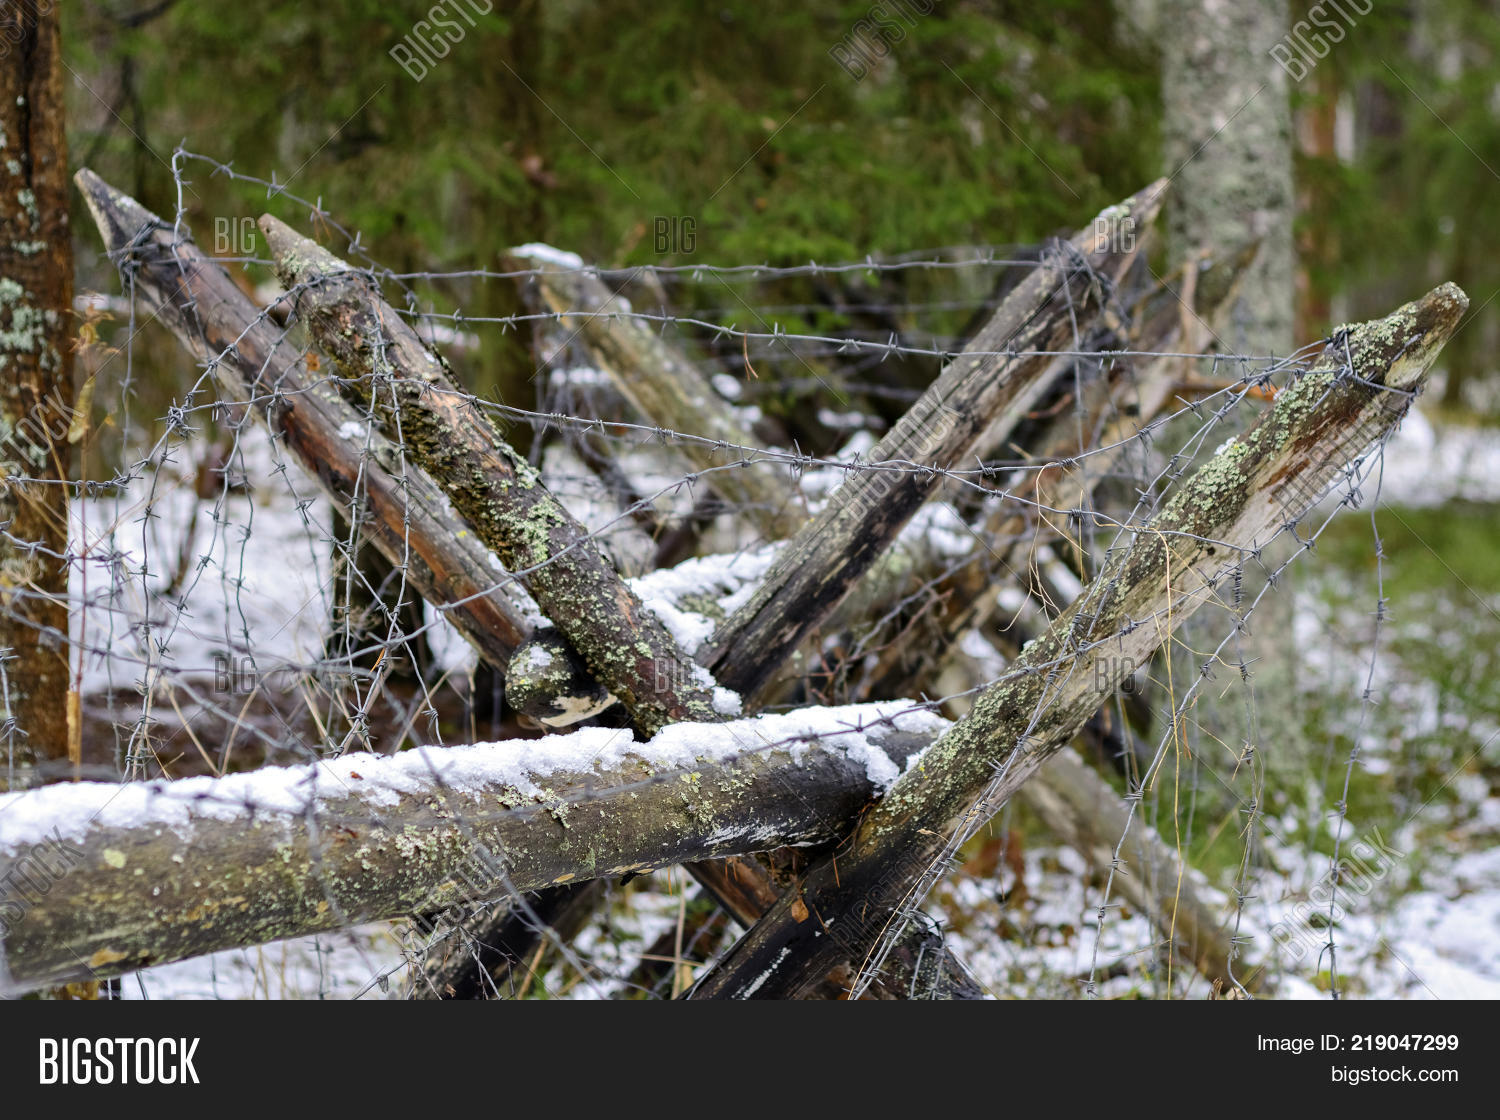 Protective Barricade Image & Photo (Free Trial) | Bigstock